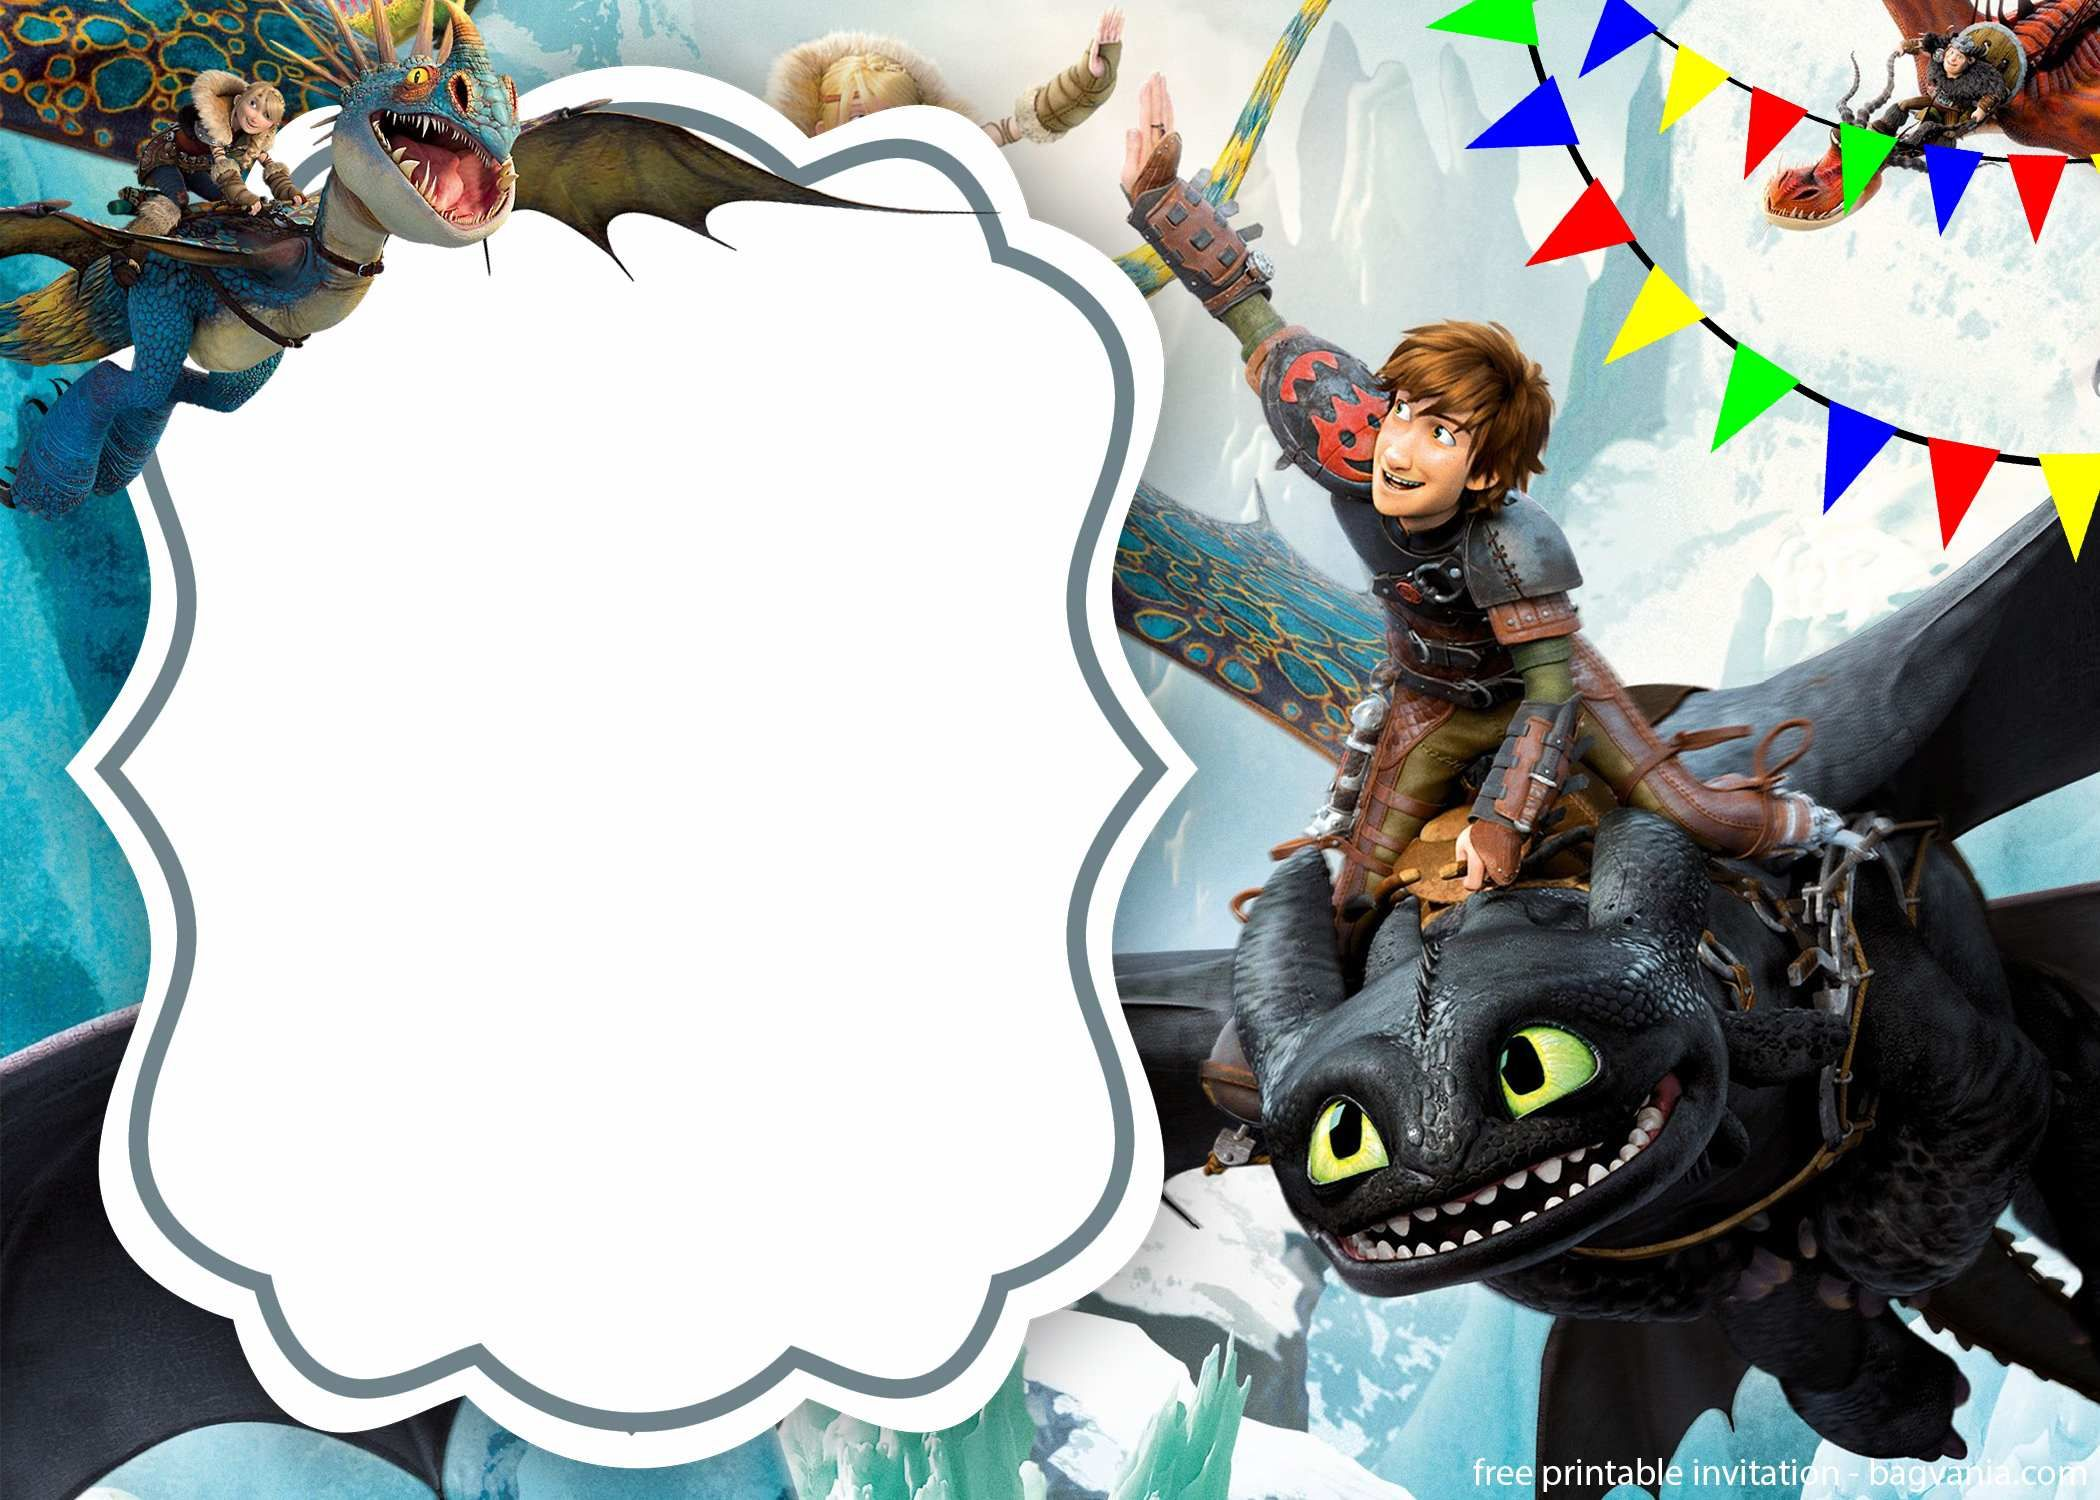 Free Download How To Train Your Dragon Invitation – FREE Printable